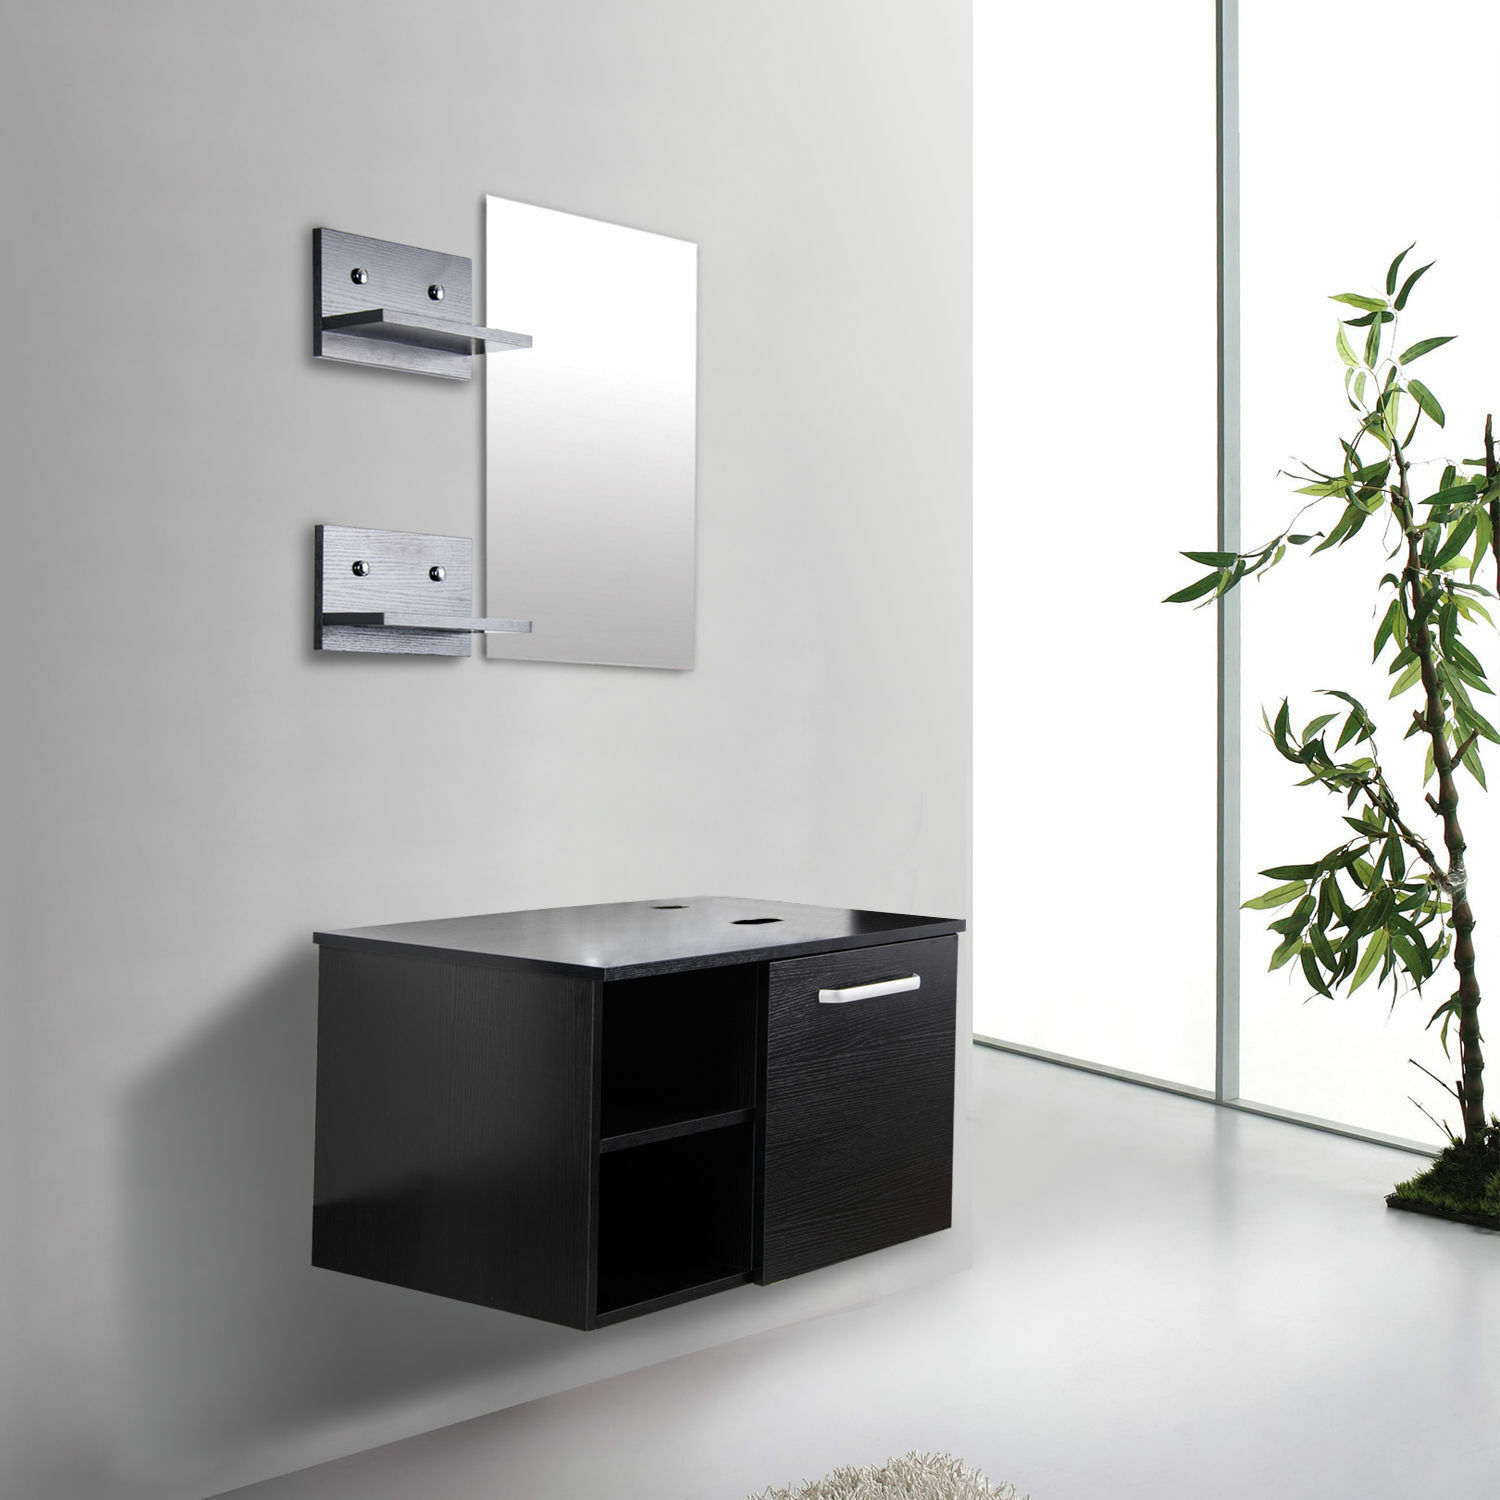 "28"" Bathroom Vanity Wall Mount Floating Cabinet Sink Mirror"